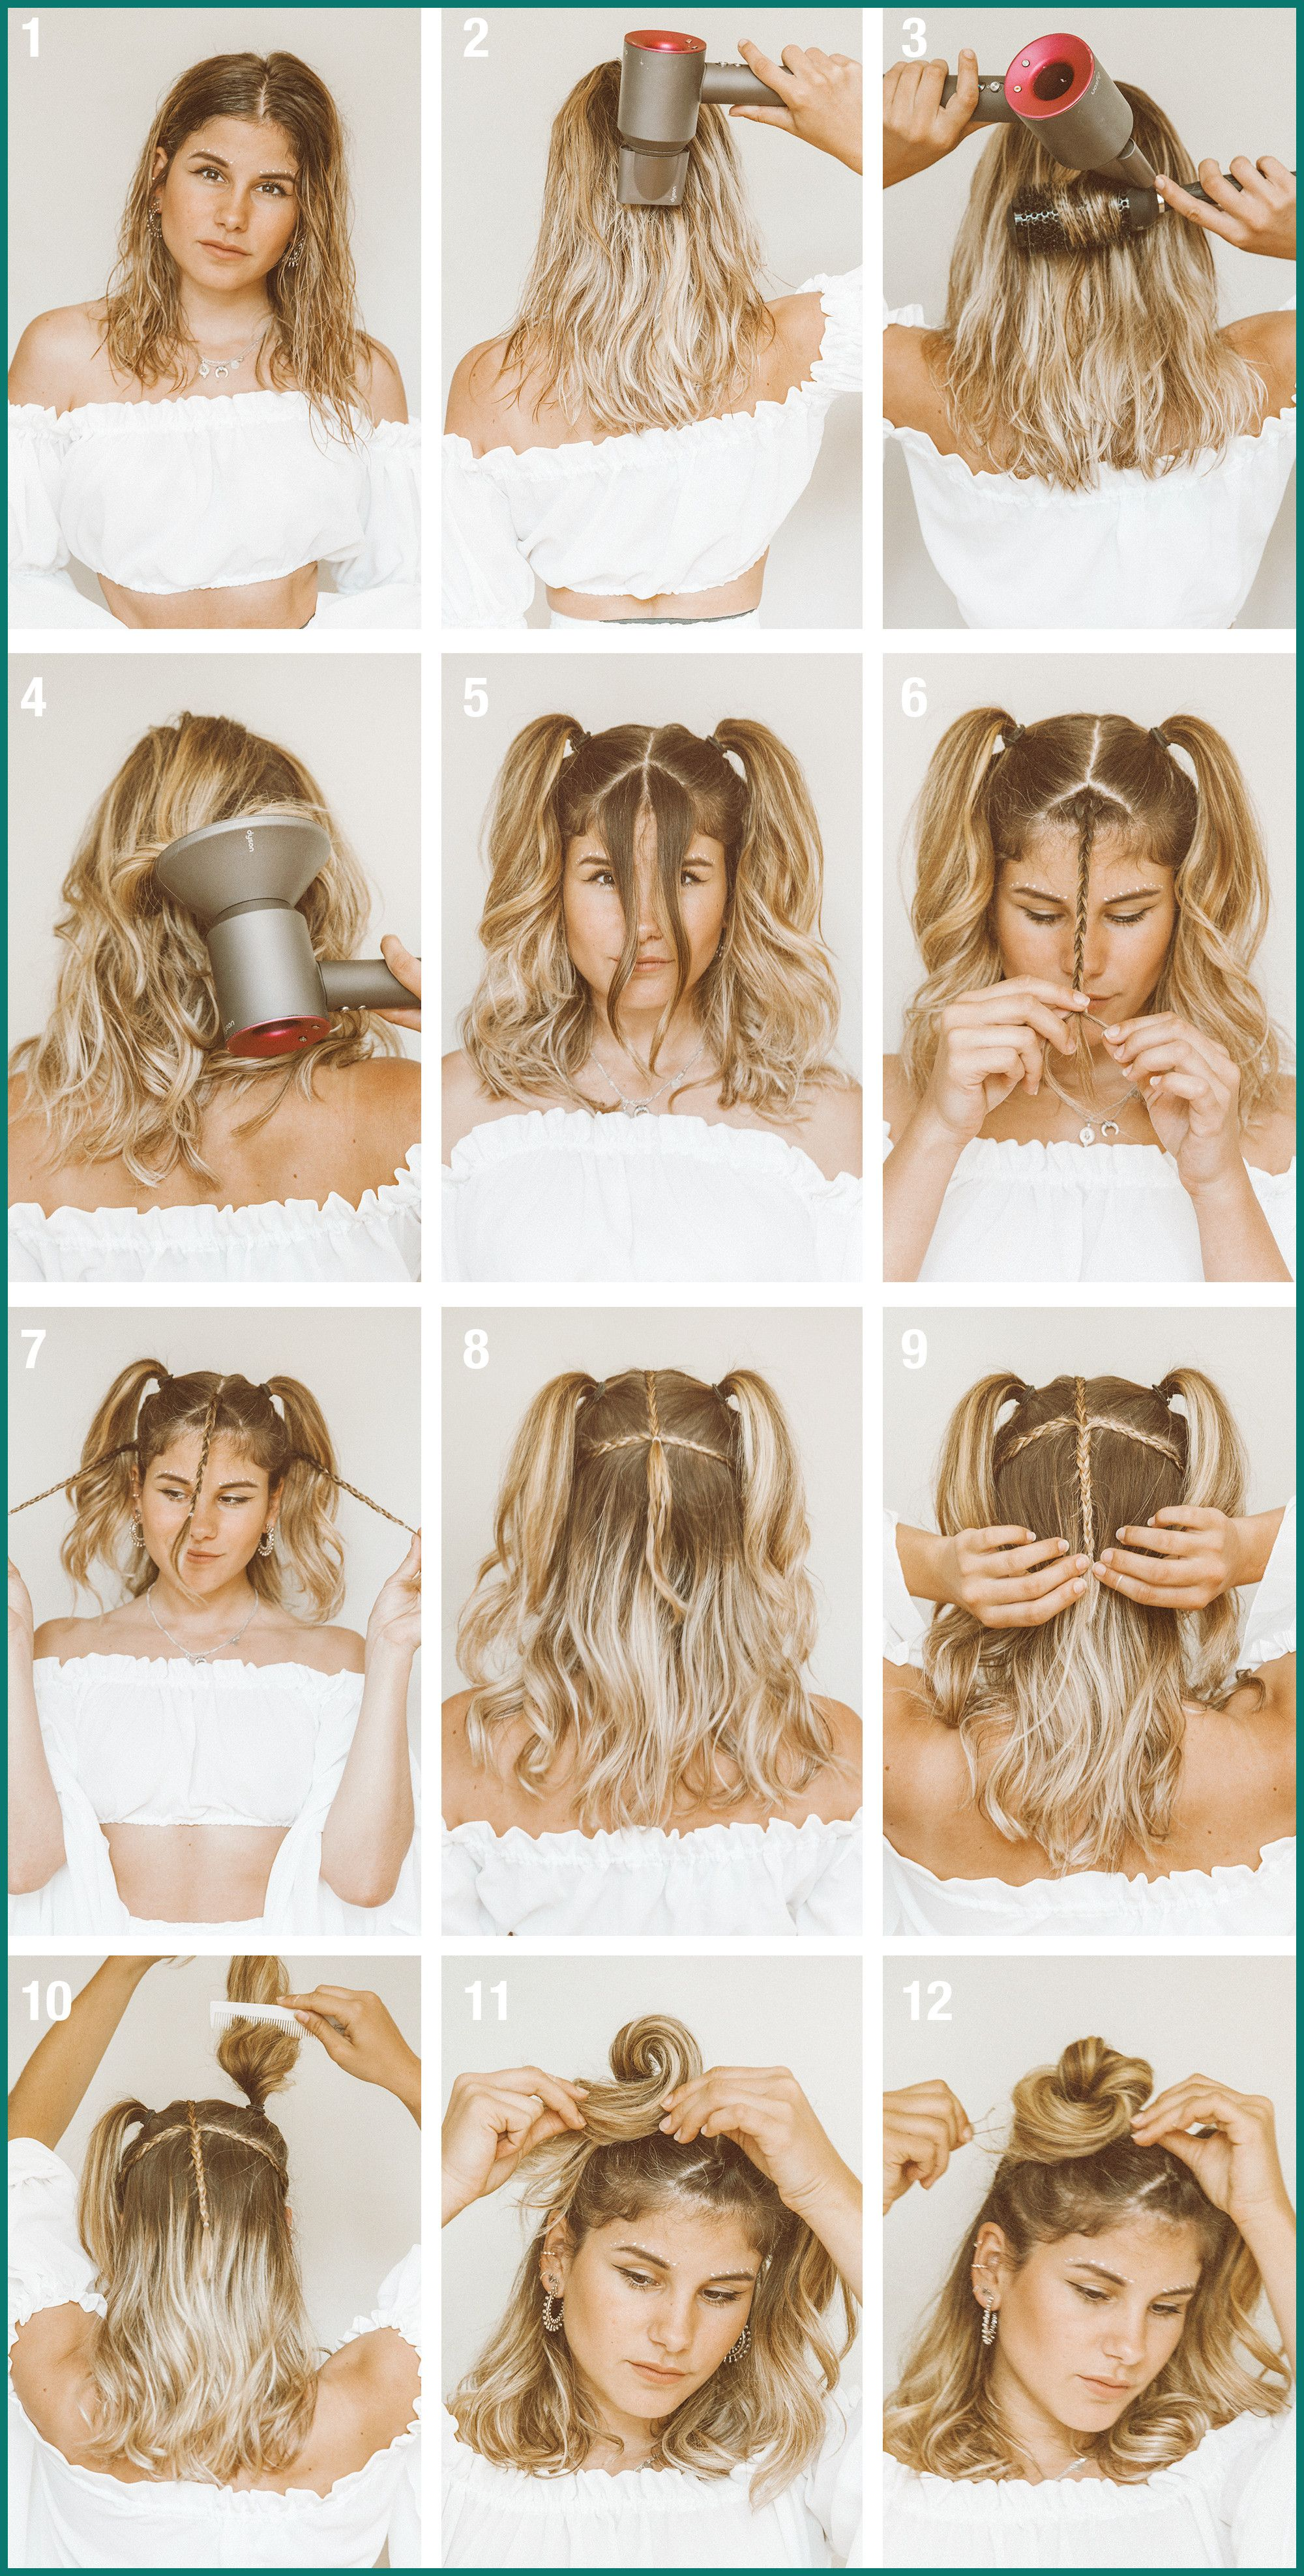 How To Do Easy Hairstyles On Short Hair Bun In 2020 Short Hair Styles Easy Hair Styles Easy Hairstyles